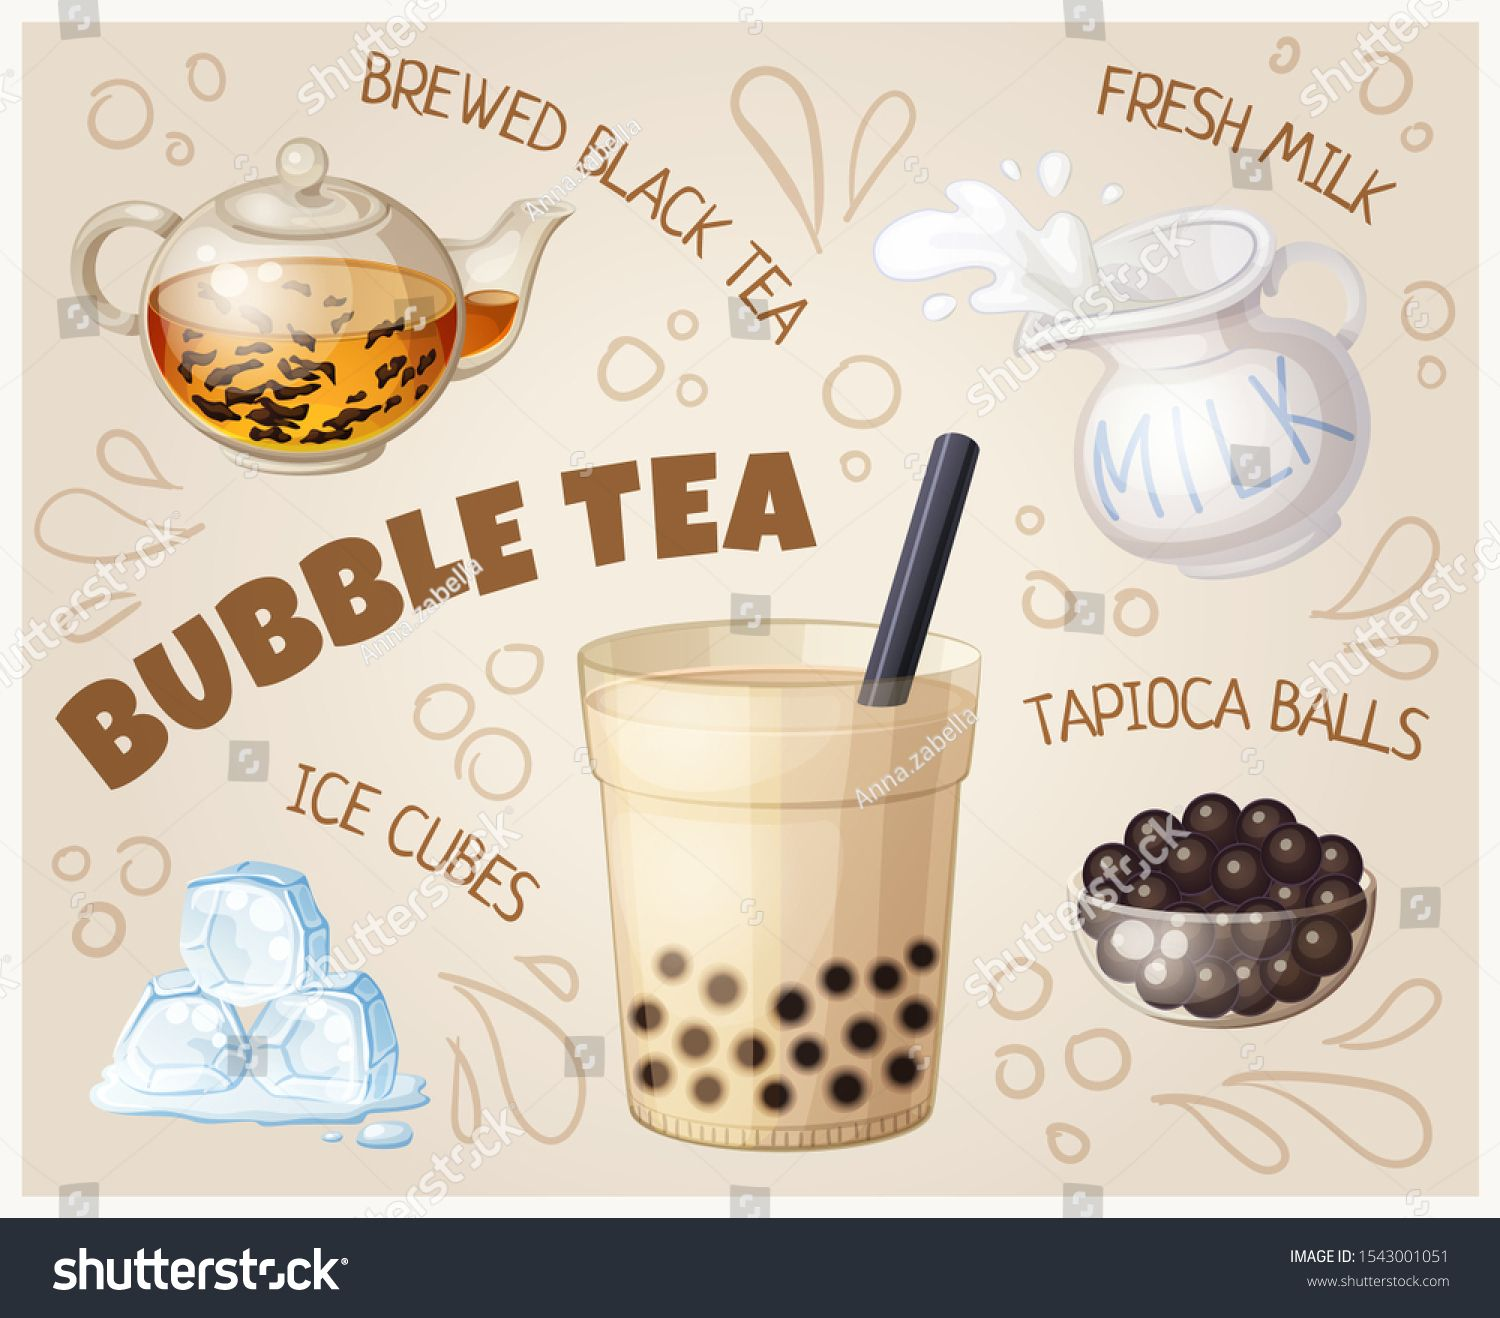 Bubble tea glass and food ingredients cartoon illustration